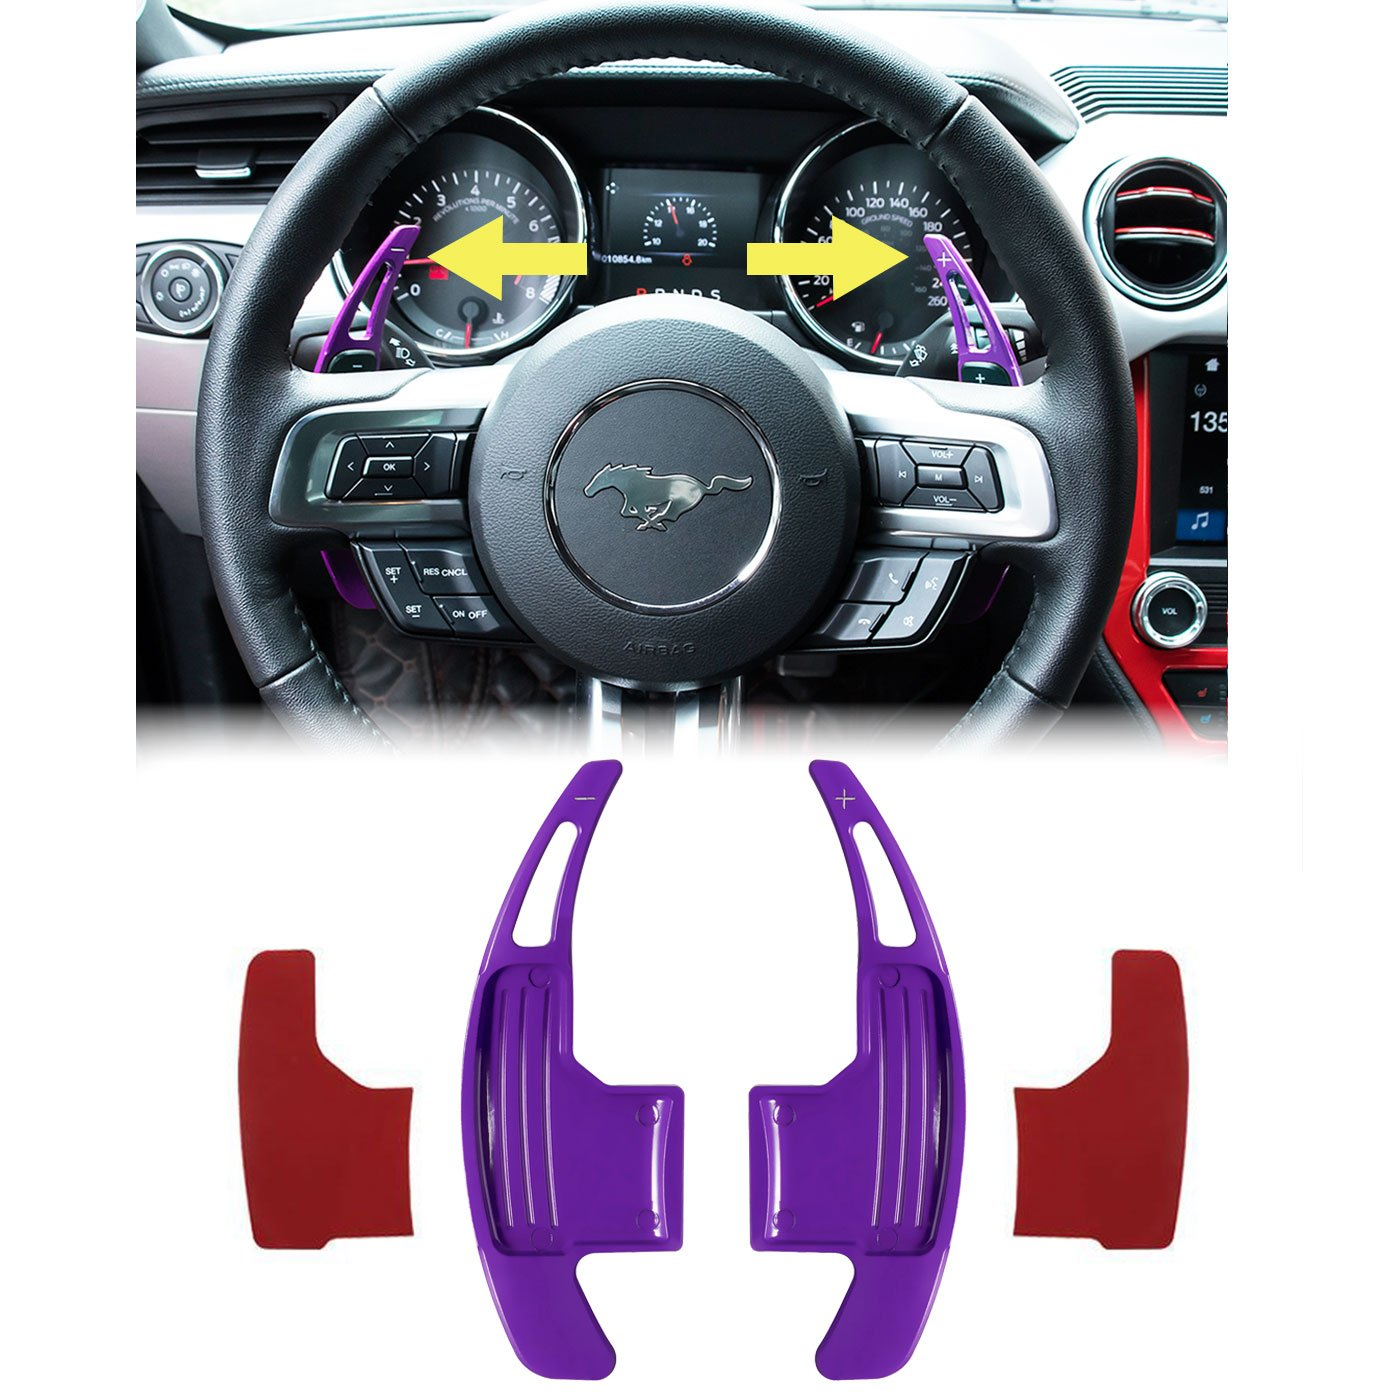 E-cowlboy Aluminum Steering Paddle Shifter Extension for Ford Mustang 2015 2016 2017 2018 Purple